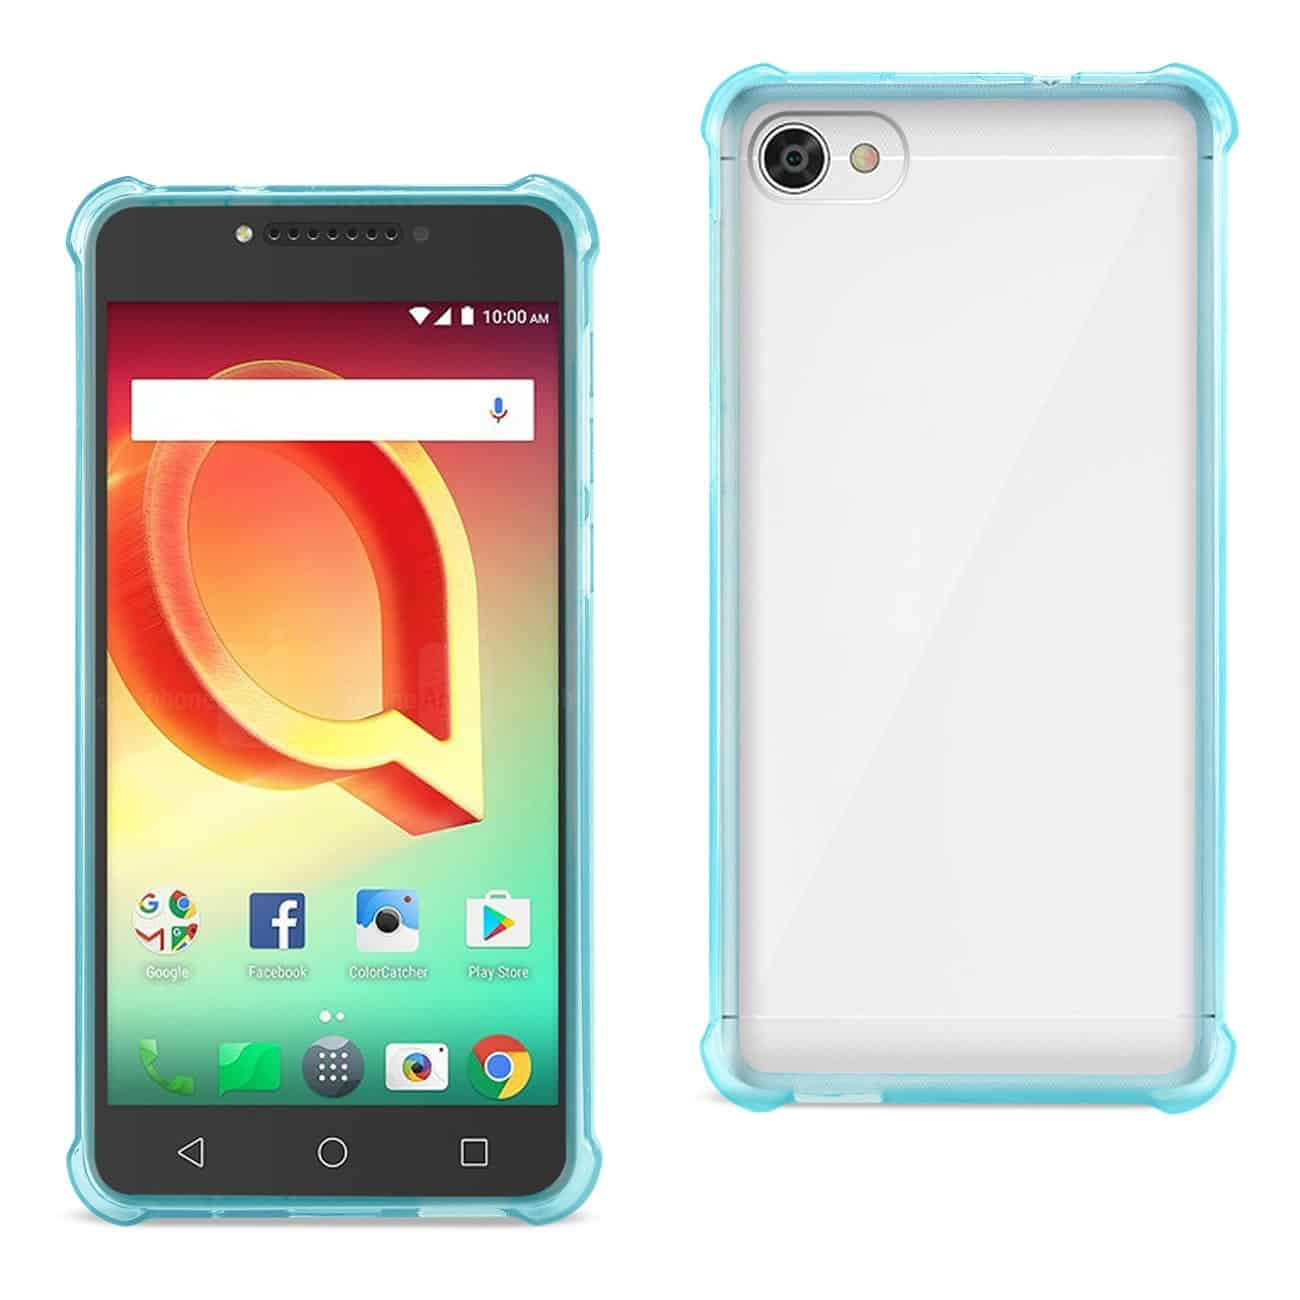 Alcatel Crave Clear Bumper Case With Air Cushion Protection In Clear Navy